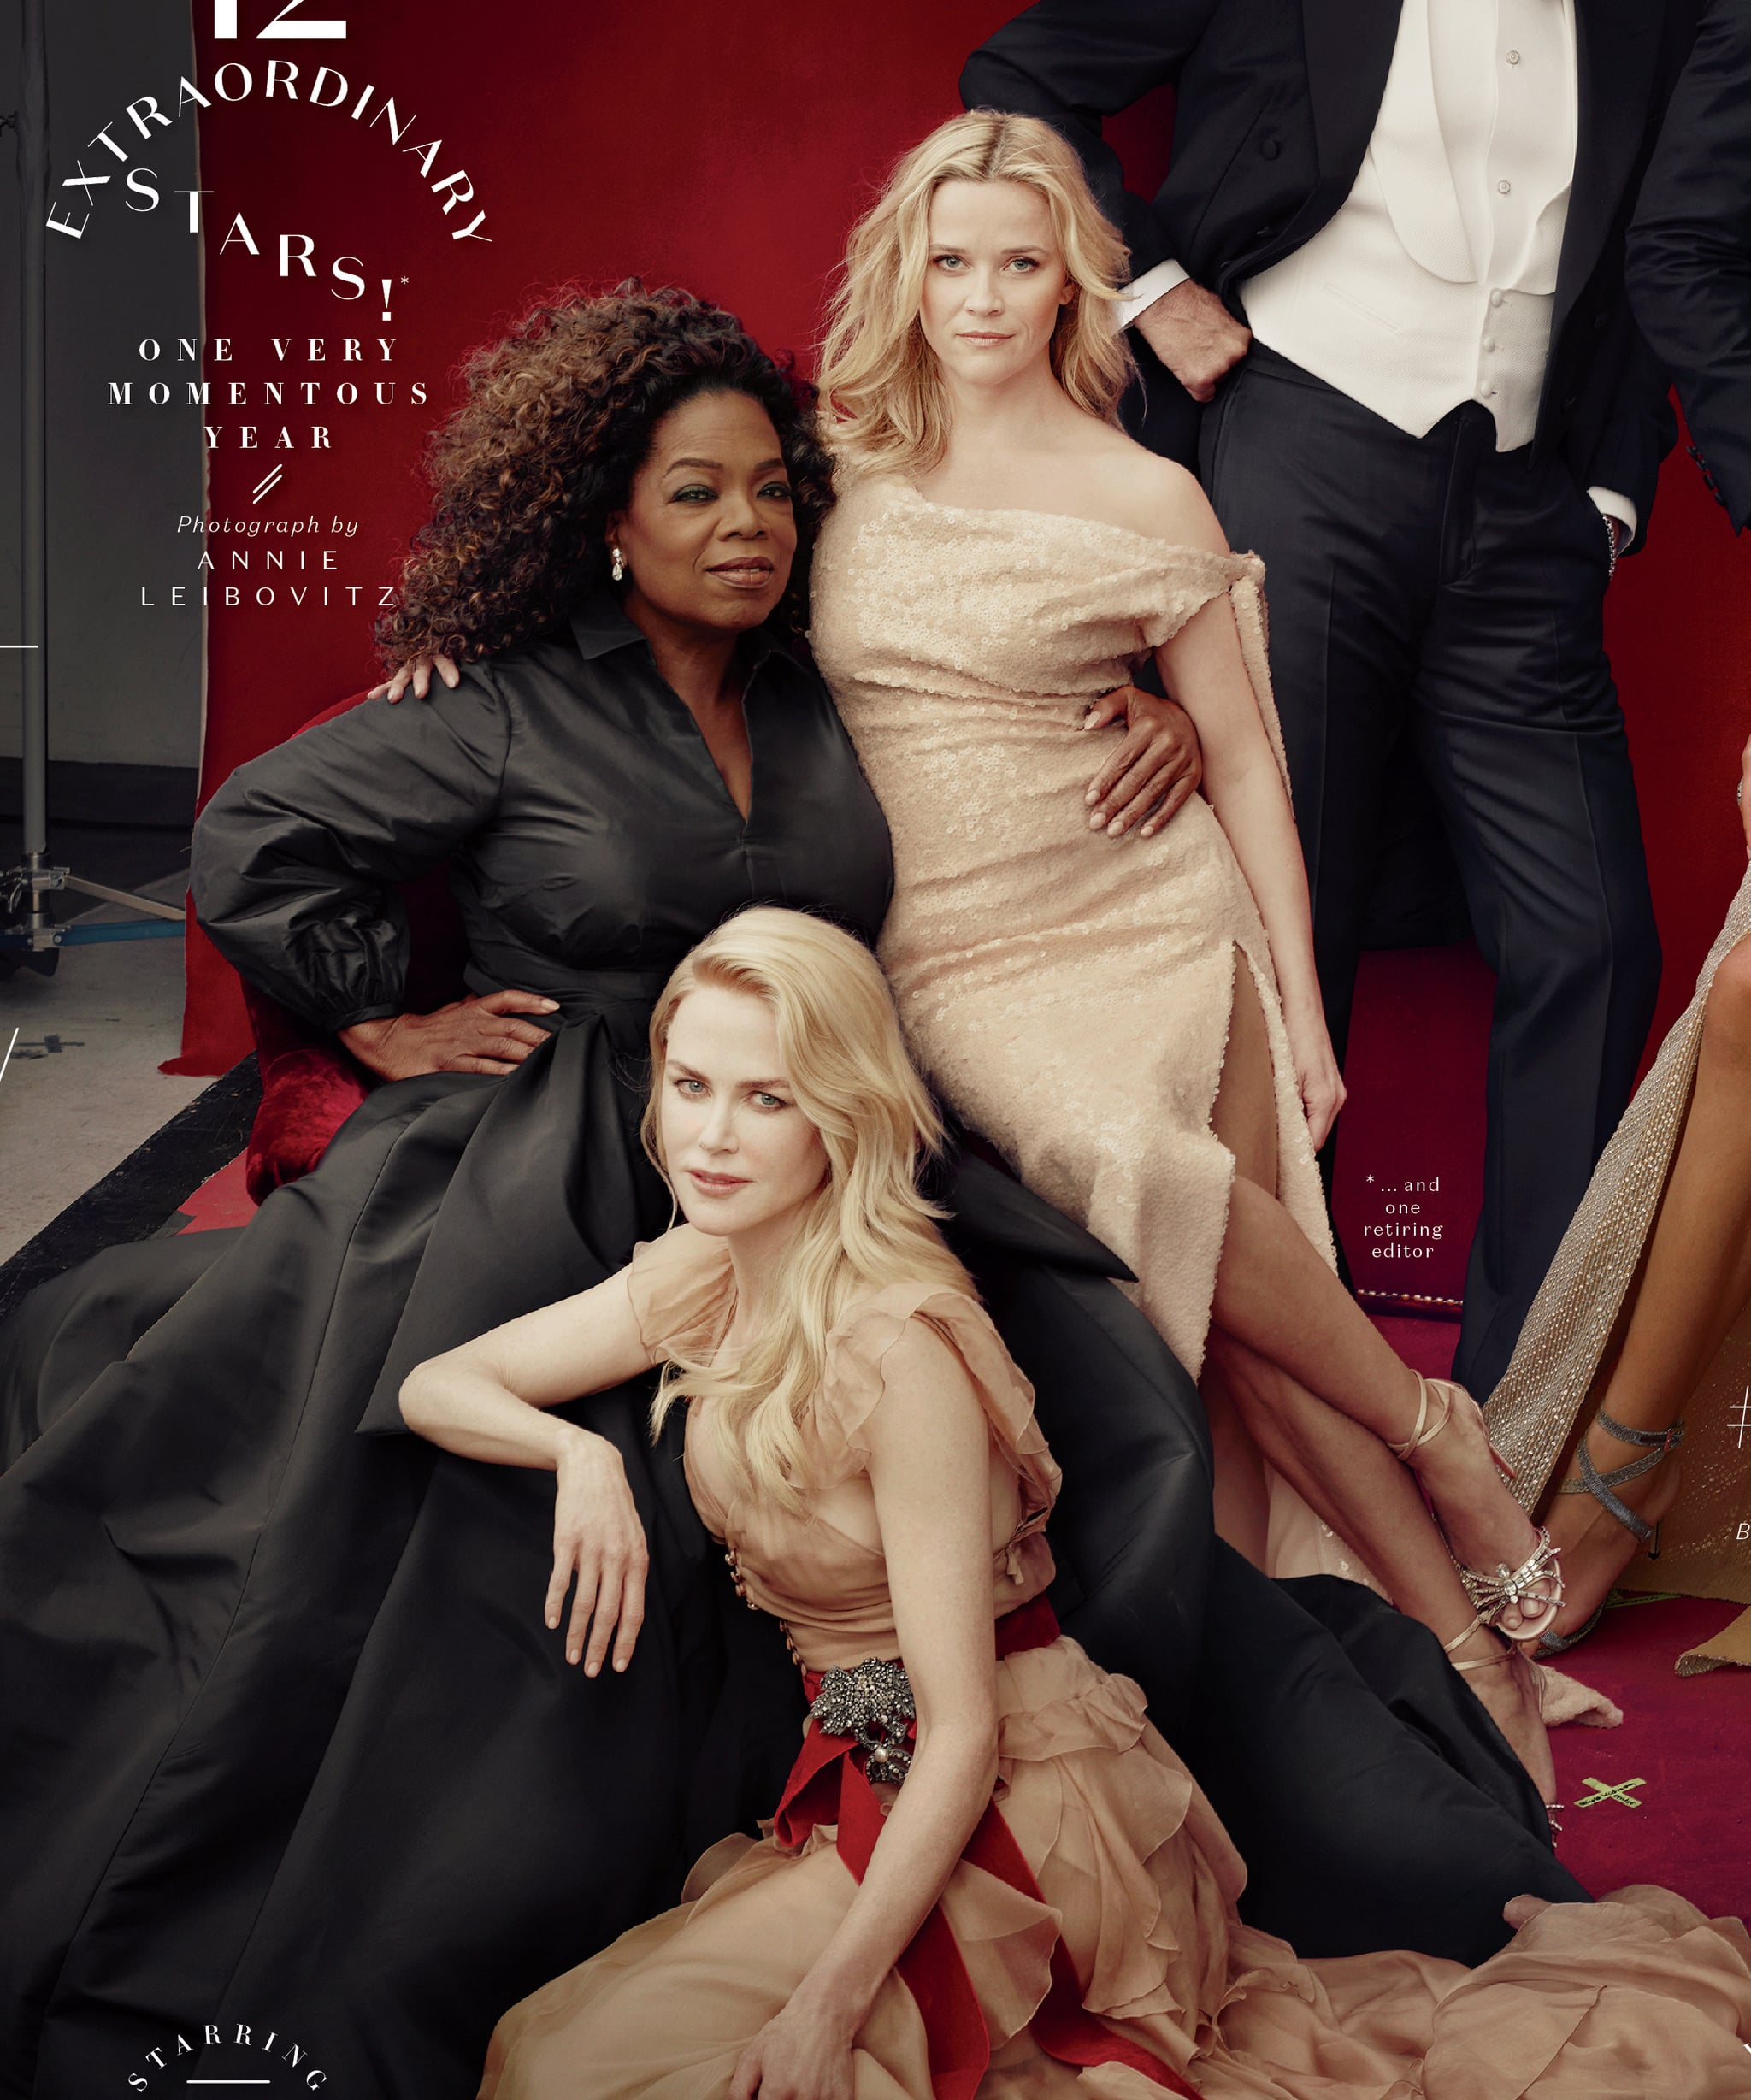 Reese Witherspoon pictured with three legs on Vanity Fair Hollywood cover